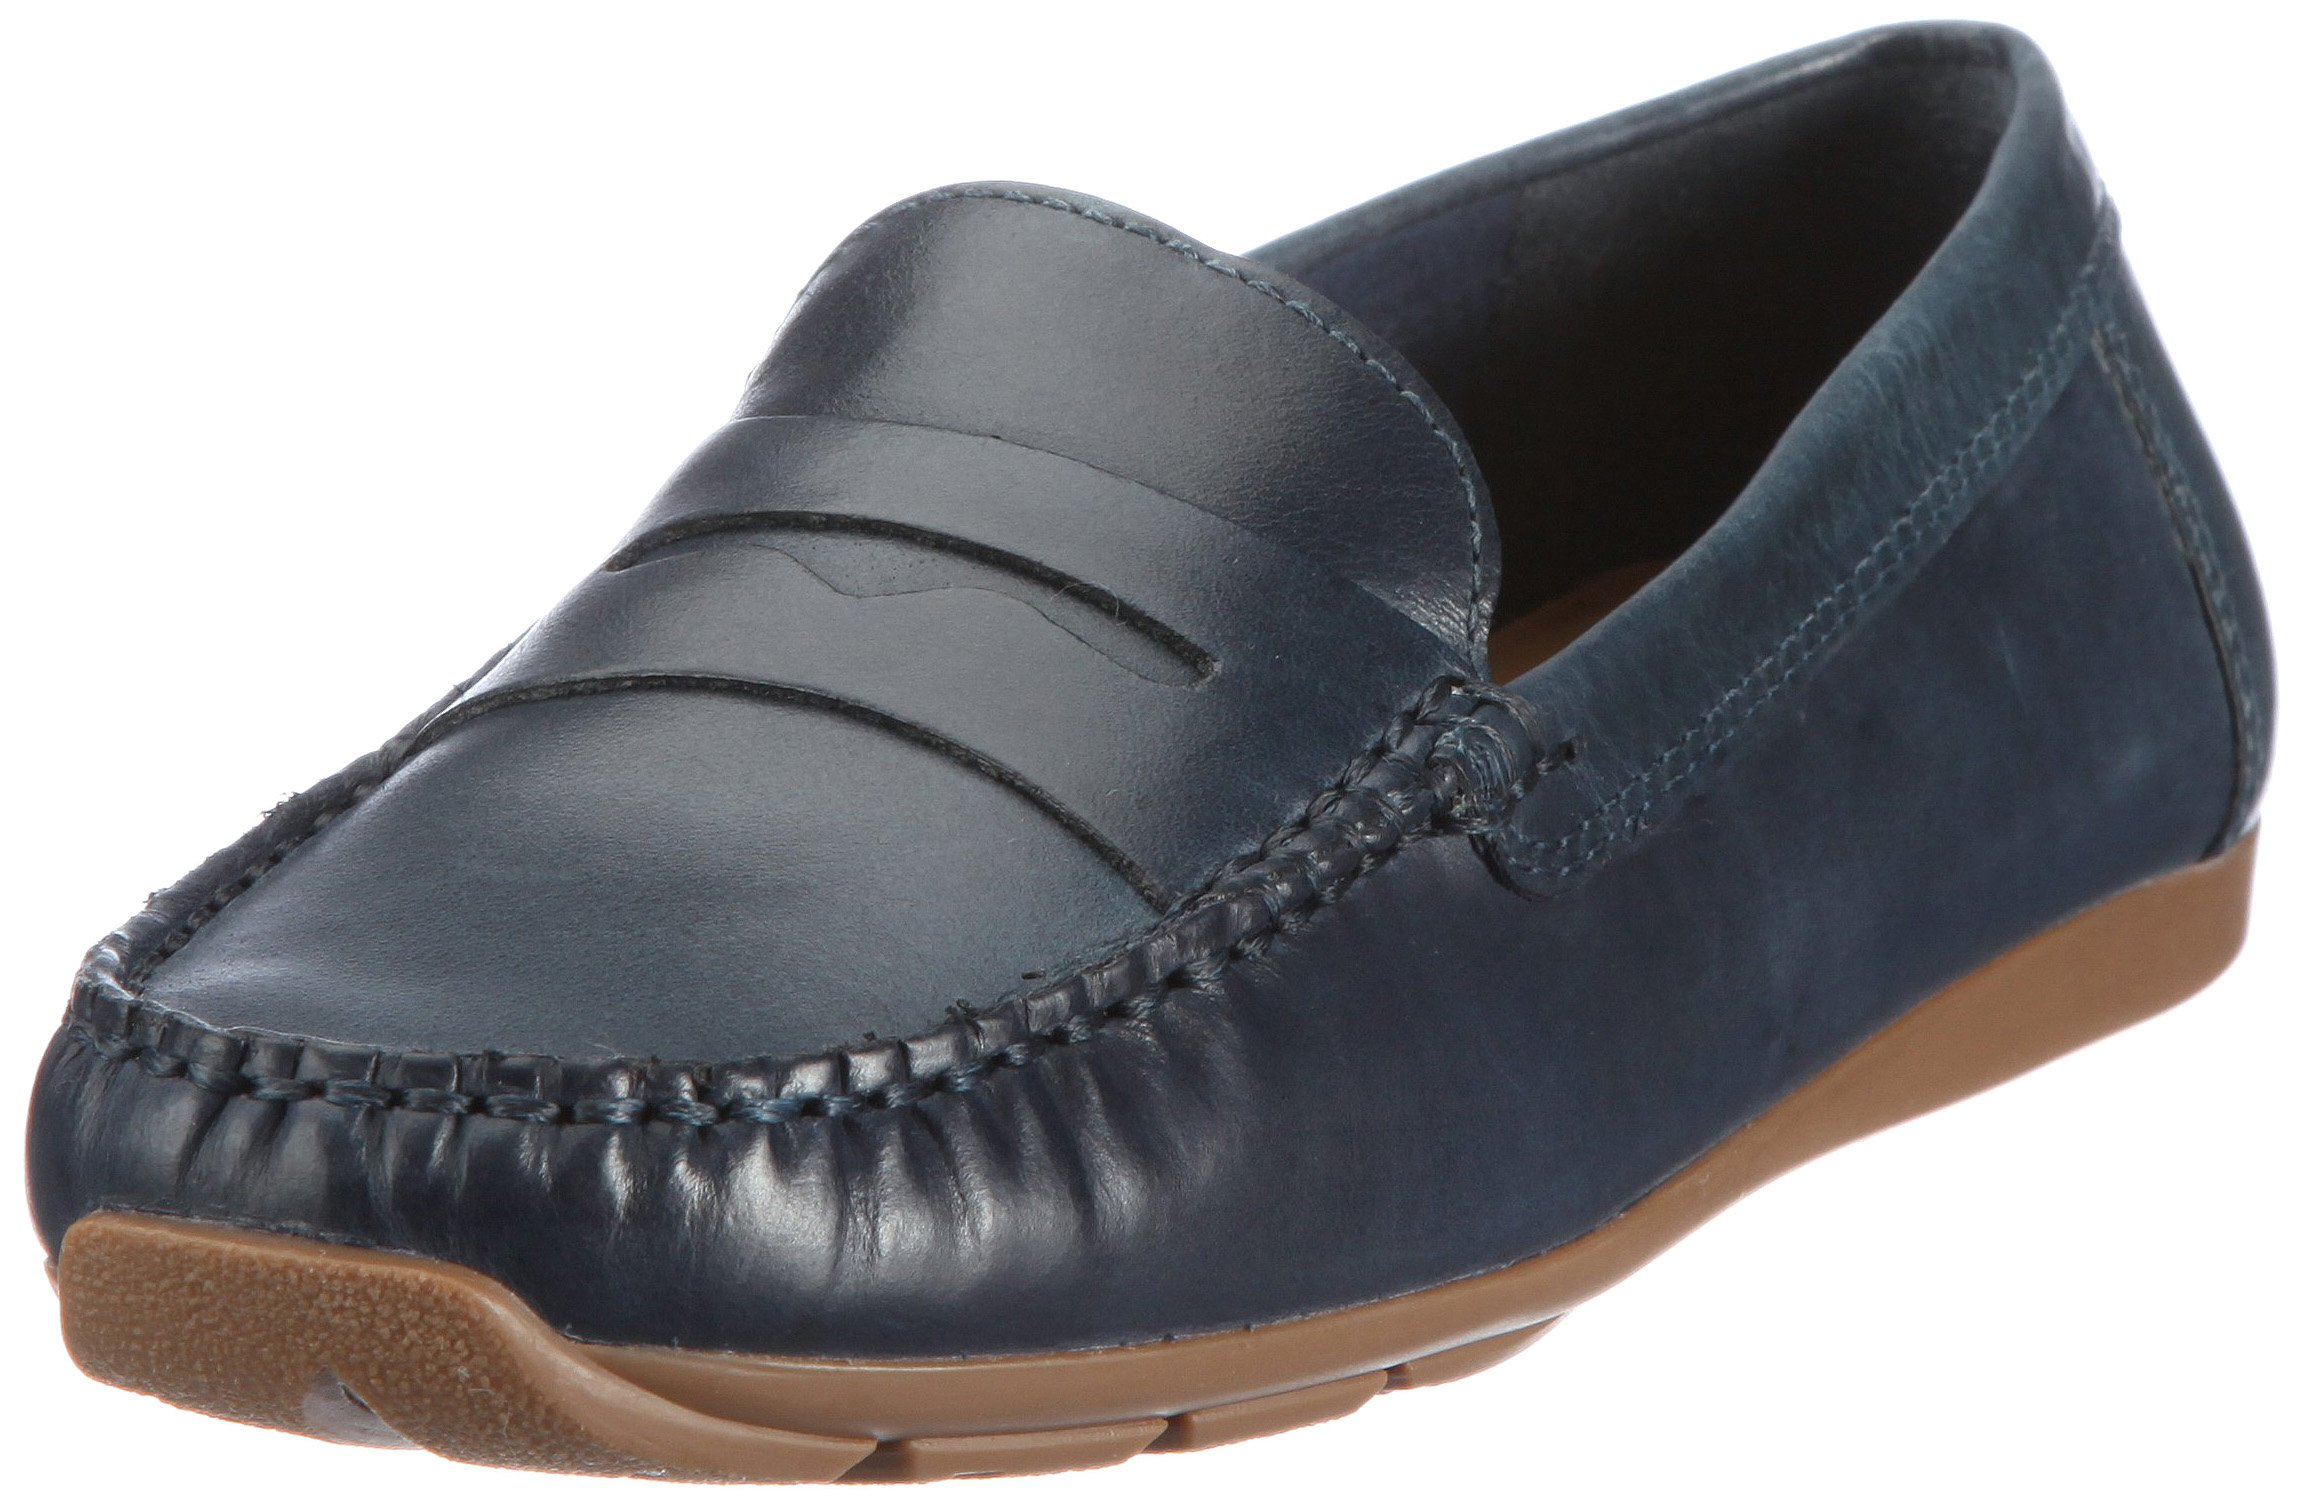 tr Clarks 5 Side sw27339 Eu 20350215Mocassins FemmeBleu Hill D9IH2WE